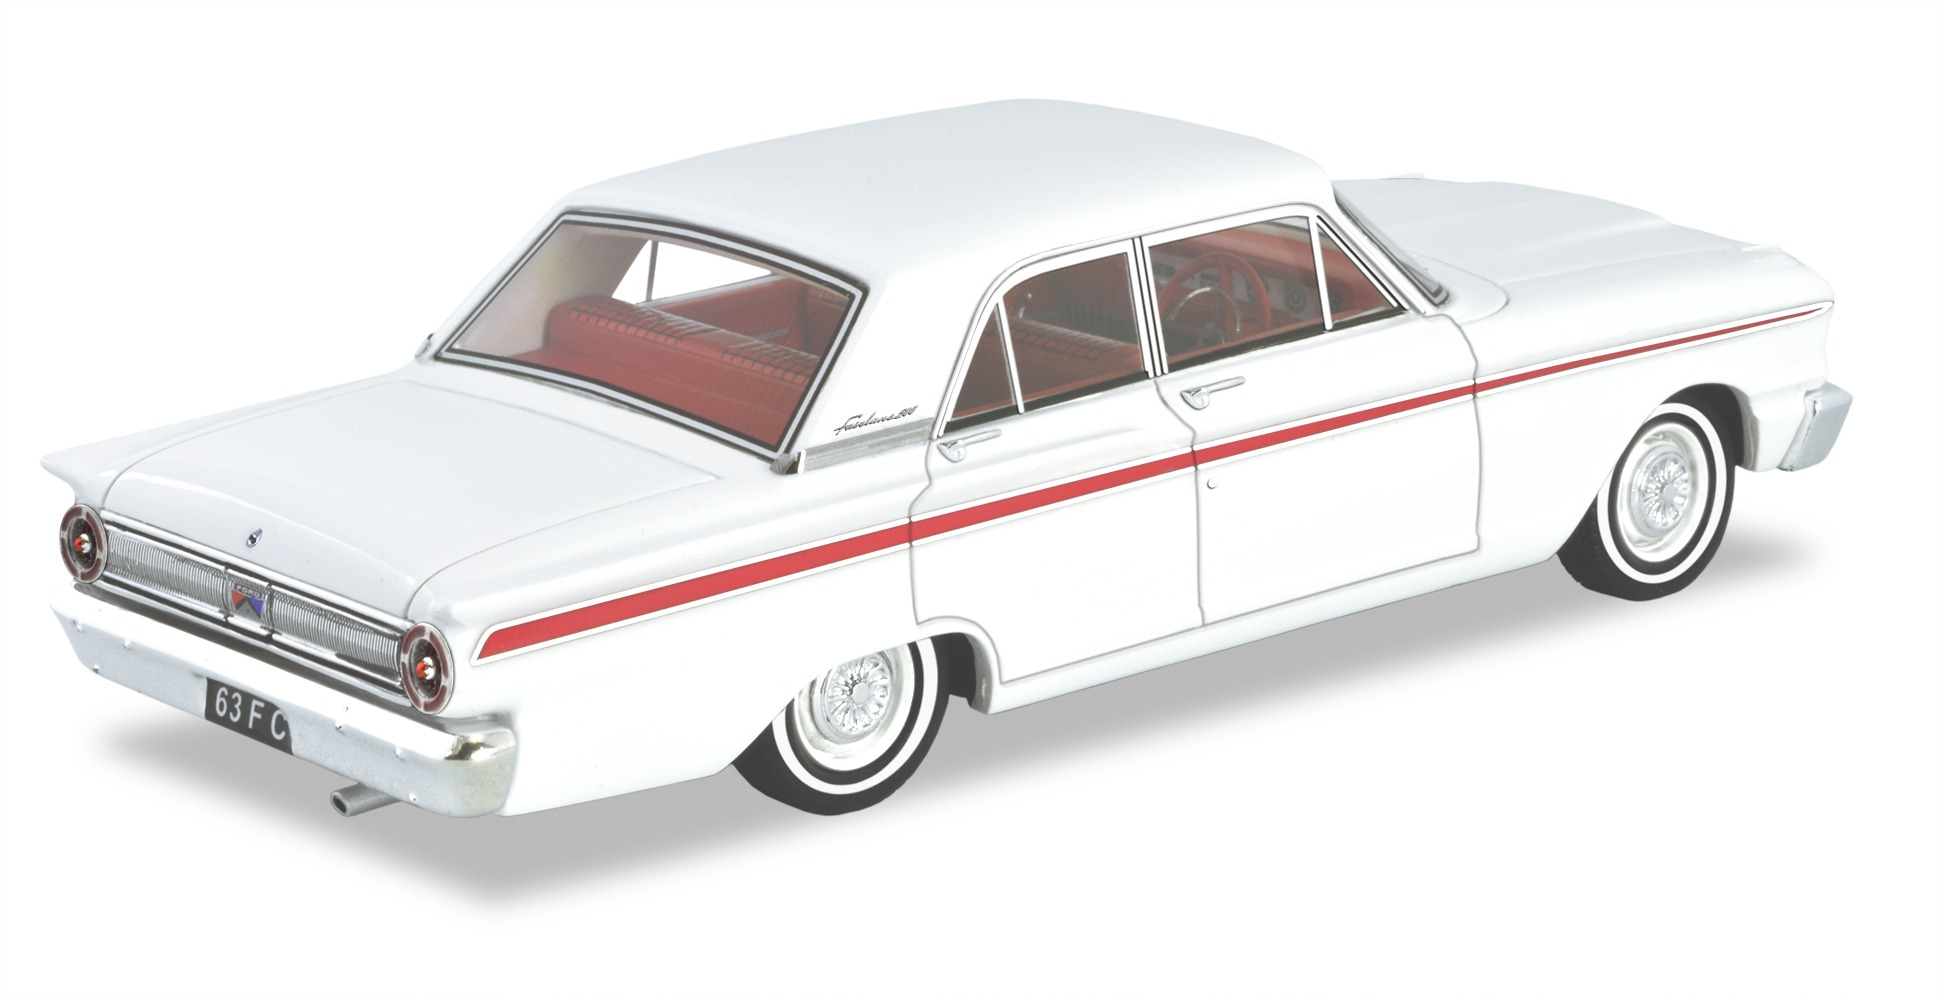 1963 Ford Fairlane Compact – White